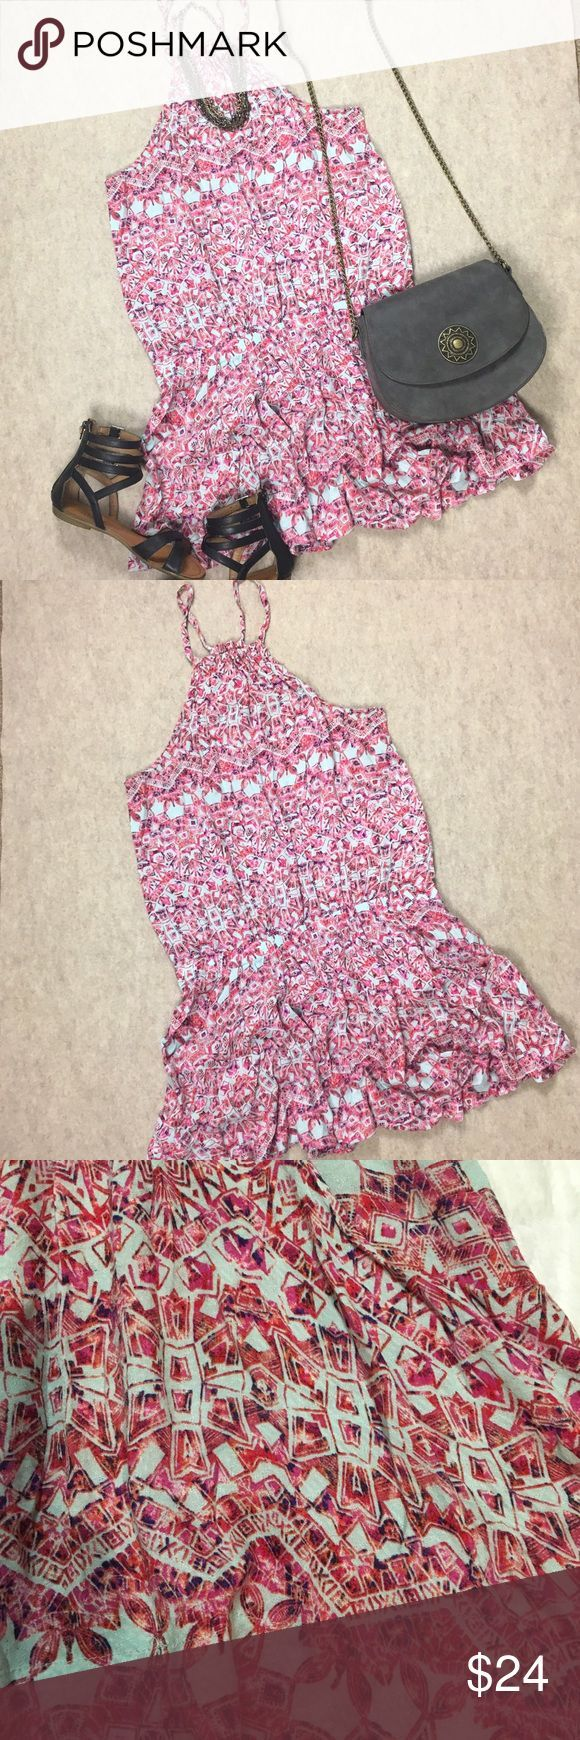 """Free People Halter Neck Drop Waist Tribal Dress Free People pink halter drop waist tribal print dress size small  Gently used, no rips, holes or stains  Approximate measurements: armpit to armpit--18""""  Length armpit to front hem--24.5"""" Free People Dresses Mini"""